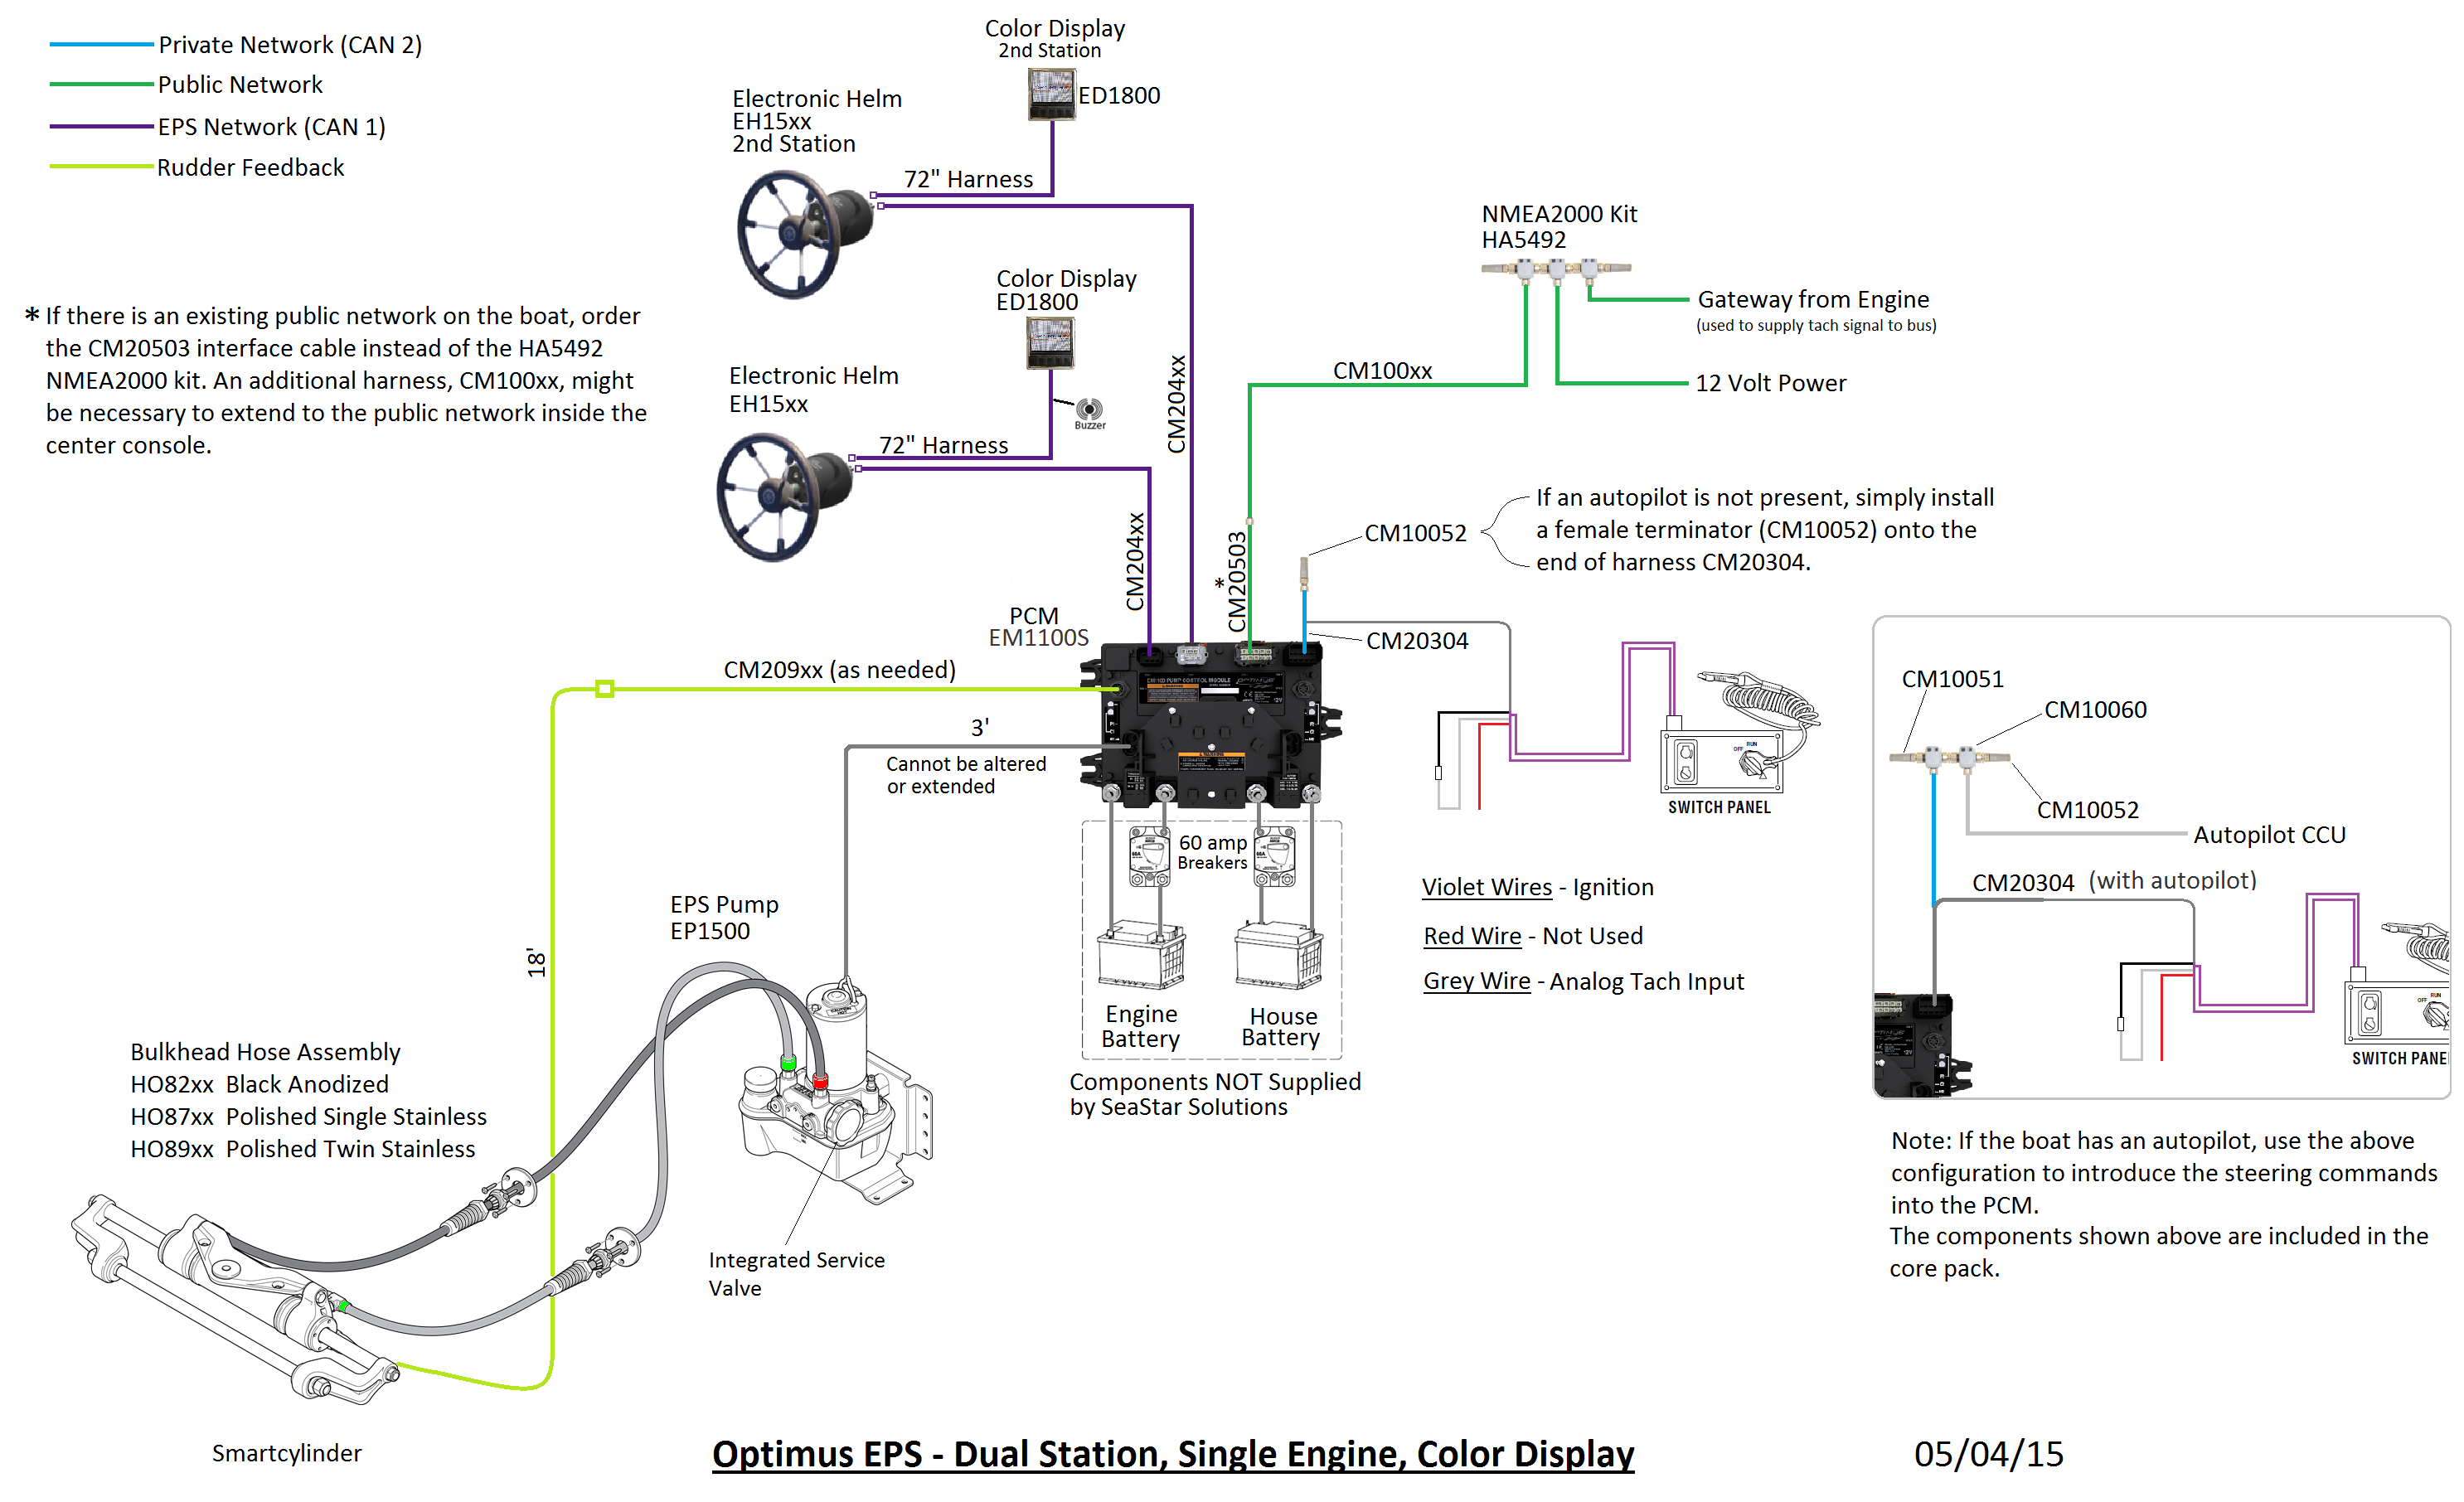 daihatsu ignition switch wiring diagram with Eps Karimun Wiring Diagram on Daihatsu Rocky Feroza Sportrak F300 Body Electrical Parts And System also Daihatsu Hijet S65 Wiring Diagram likewise 1971 Honda Ct90 Parts Diagram moreover Wiringdiagrams21   wp Content uploads 2010 07 GMC 2500 HD Trailer Wiring Diagram thumb also 94 Geo Prizm Radiator Diagram Wiring Photos For.